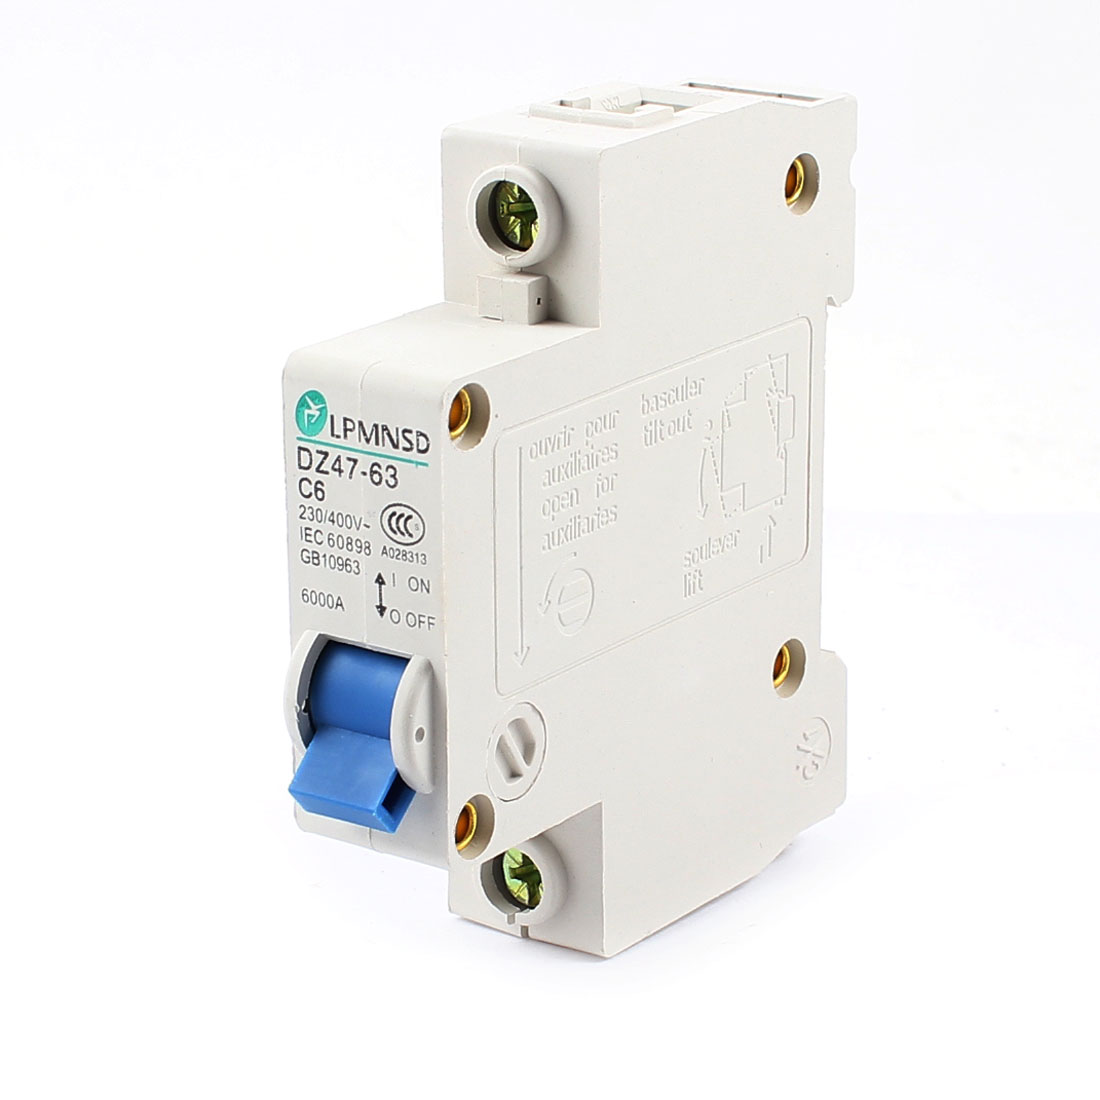 6000A Breaking Capacity 1 Pole 35mm DIN Rail Mounted Miniature Circuit Breaker AC 230/400V 6Amp DZ47-63 C6